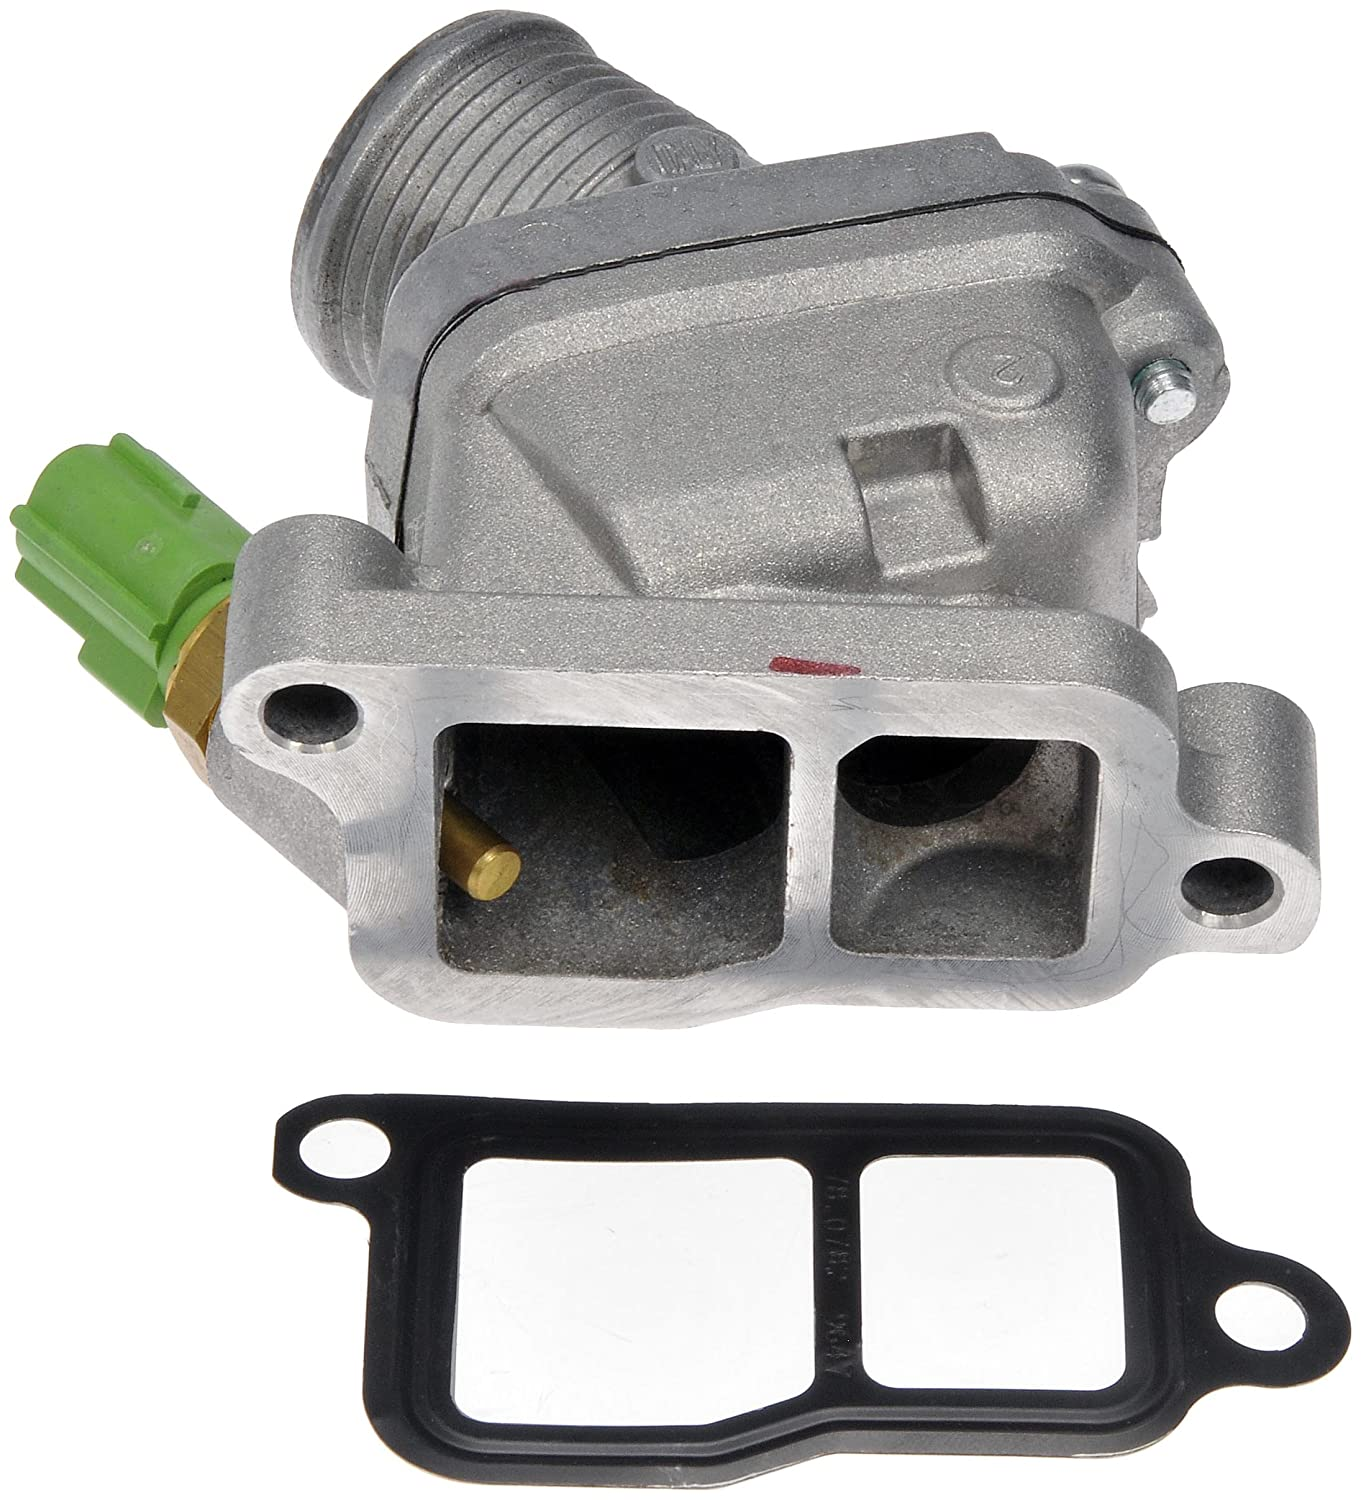 Dorman 902-5152 Coolant Thermostat Housing Assembly